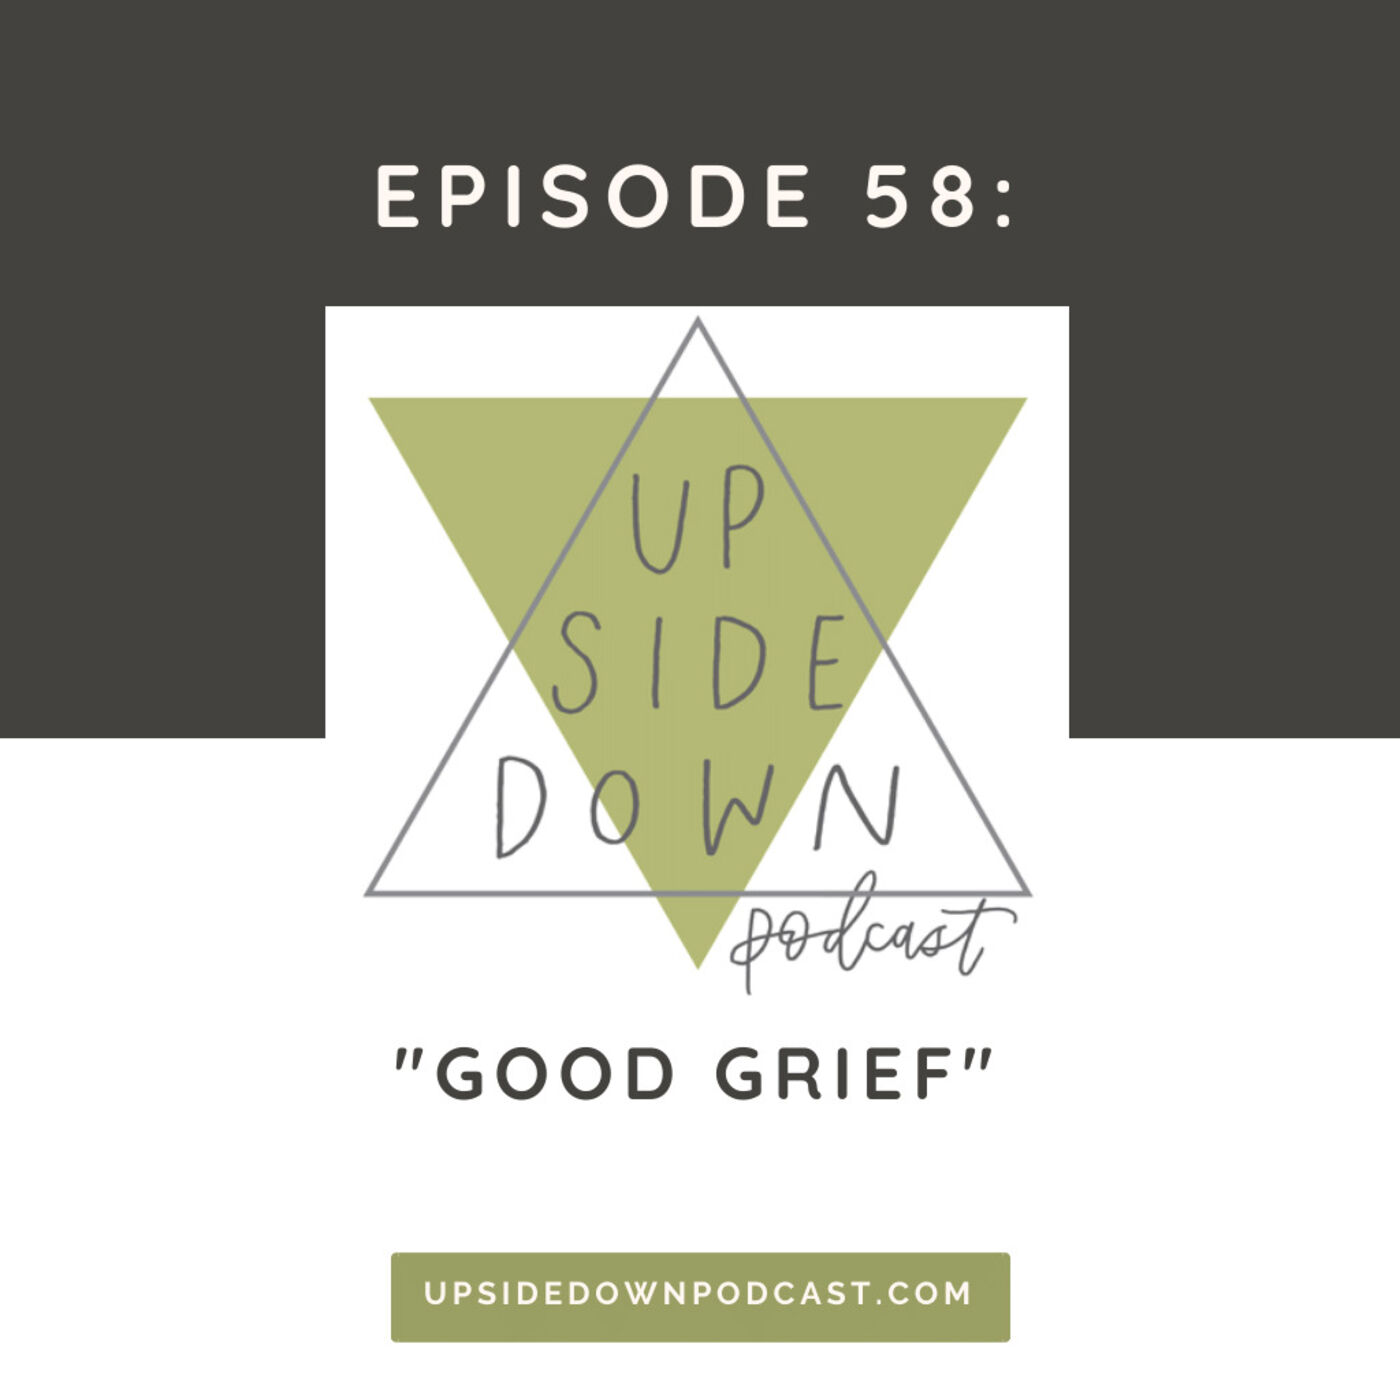 Episode 58 - Good Grief: Leaning into the Now and Not Yet